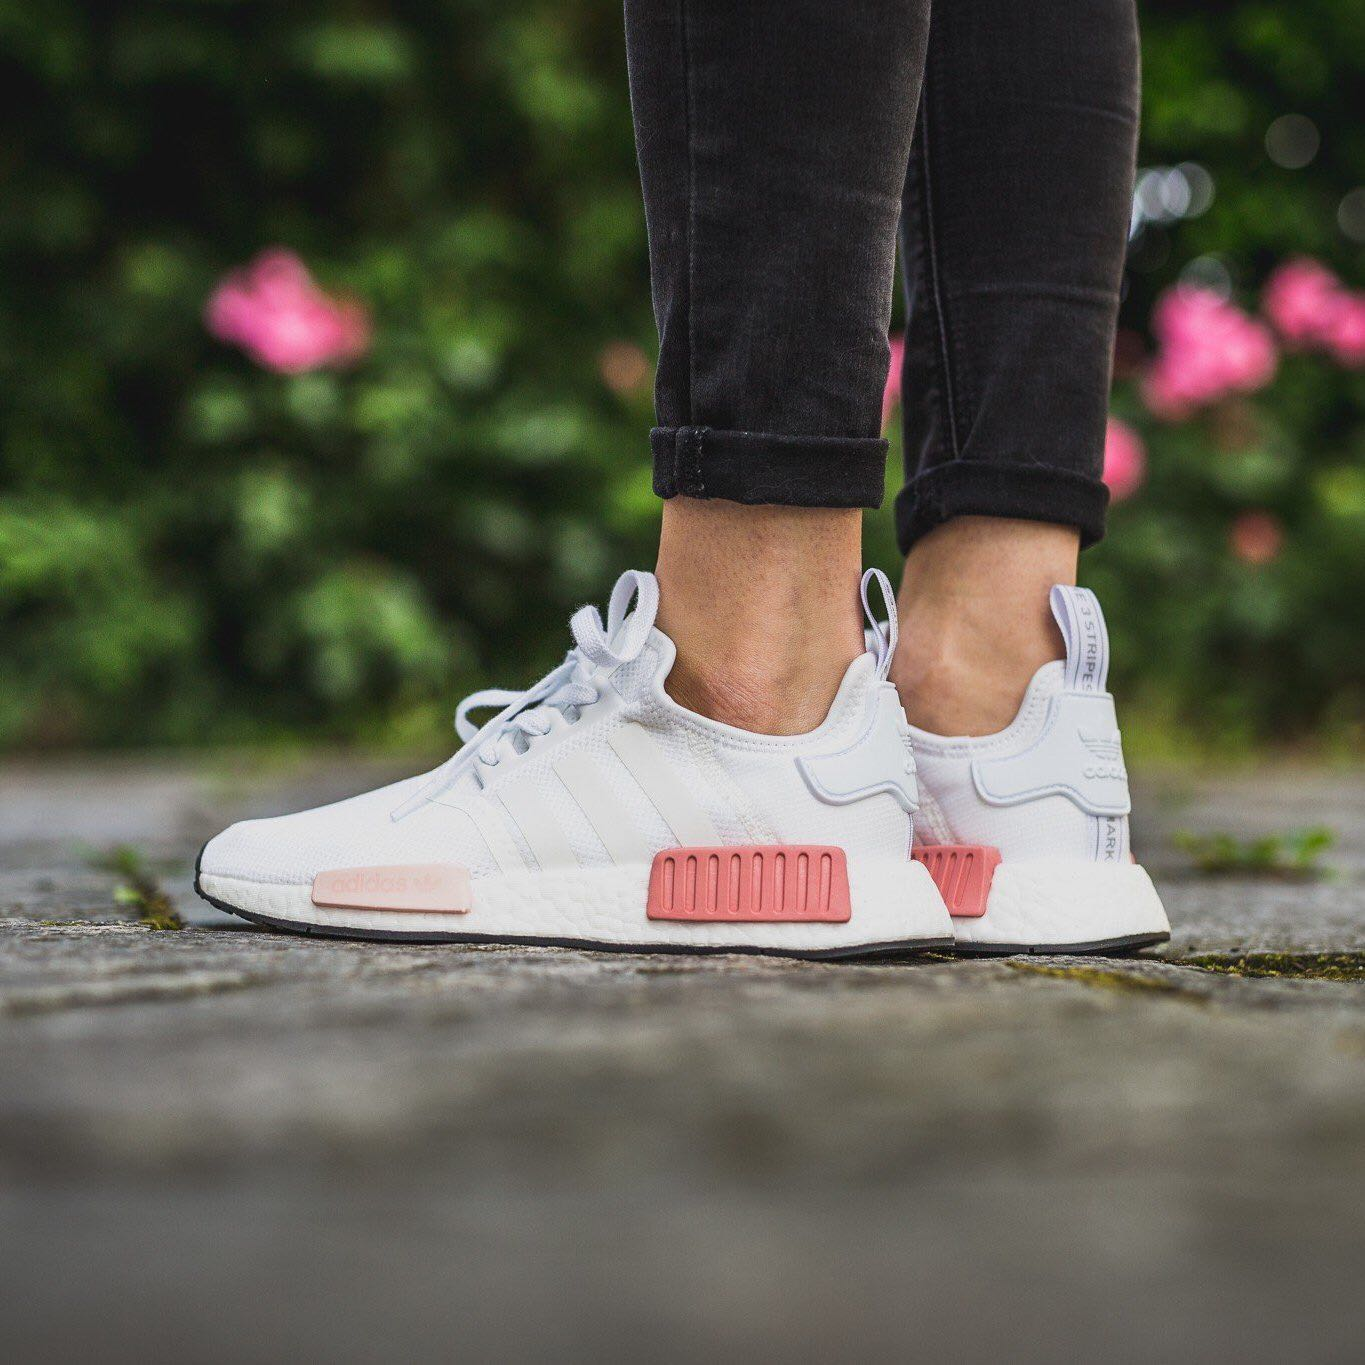 Adidas Originals Nmd R1 W White Rose Women S Fashion Shoes On